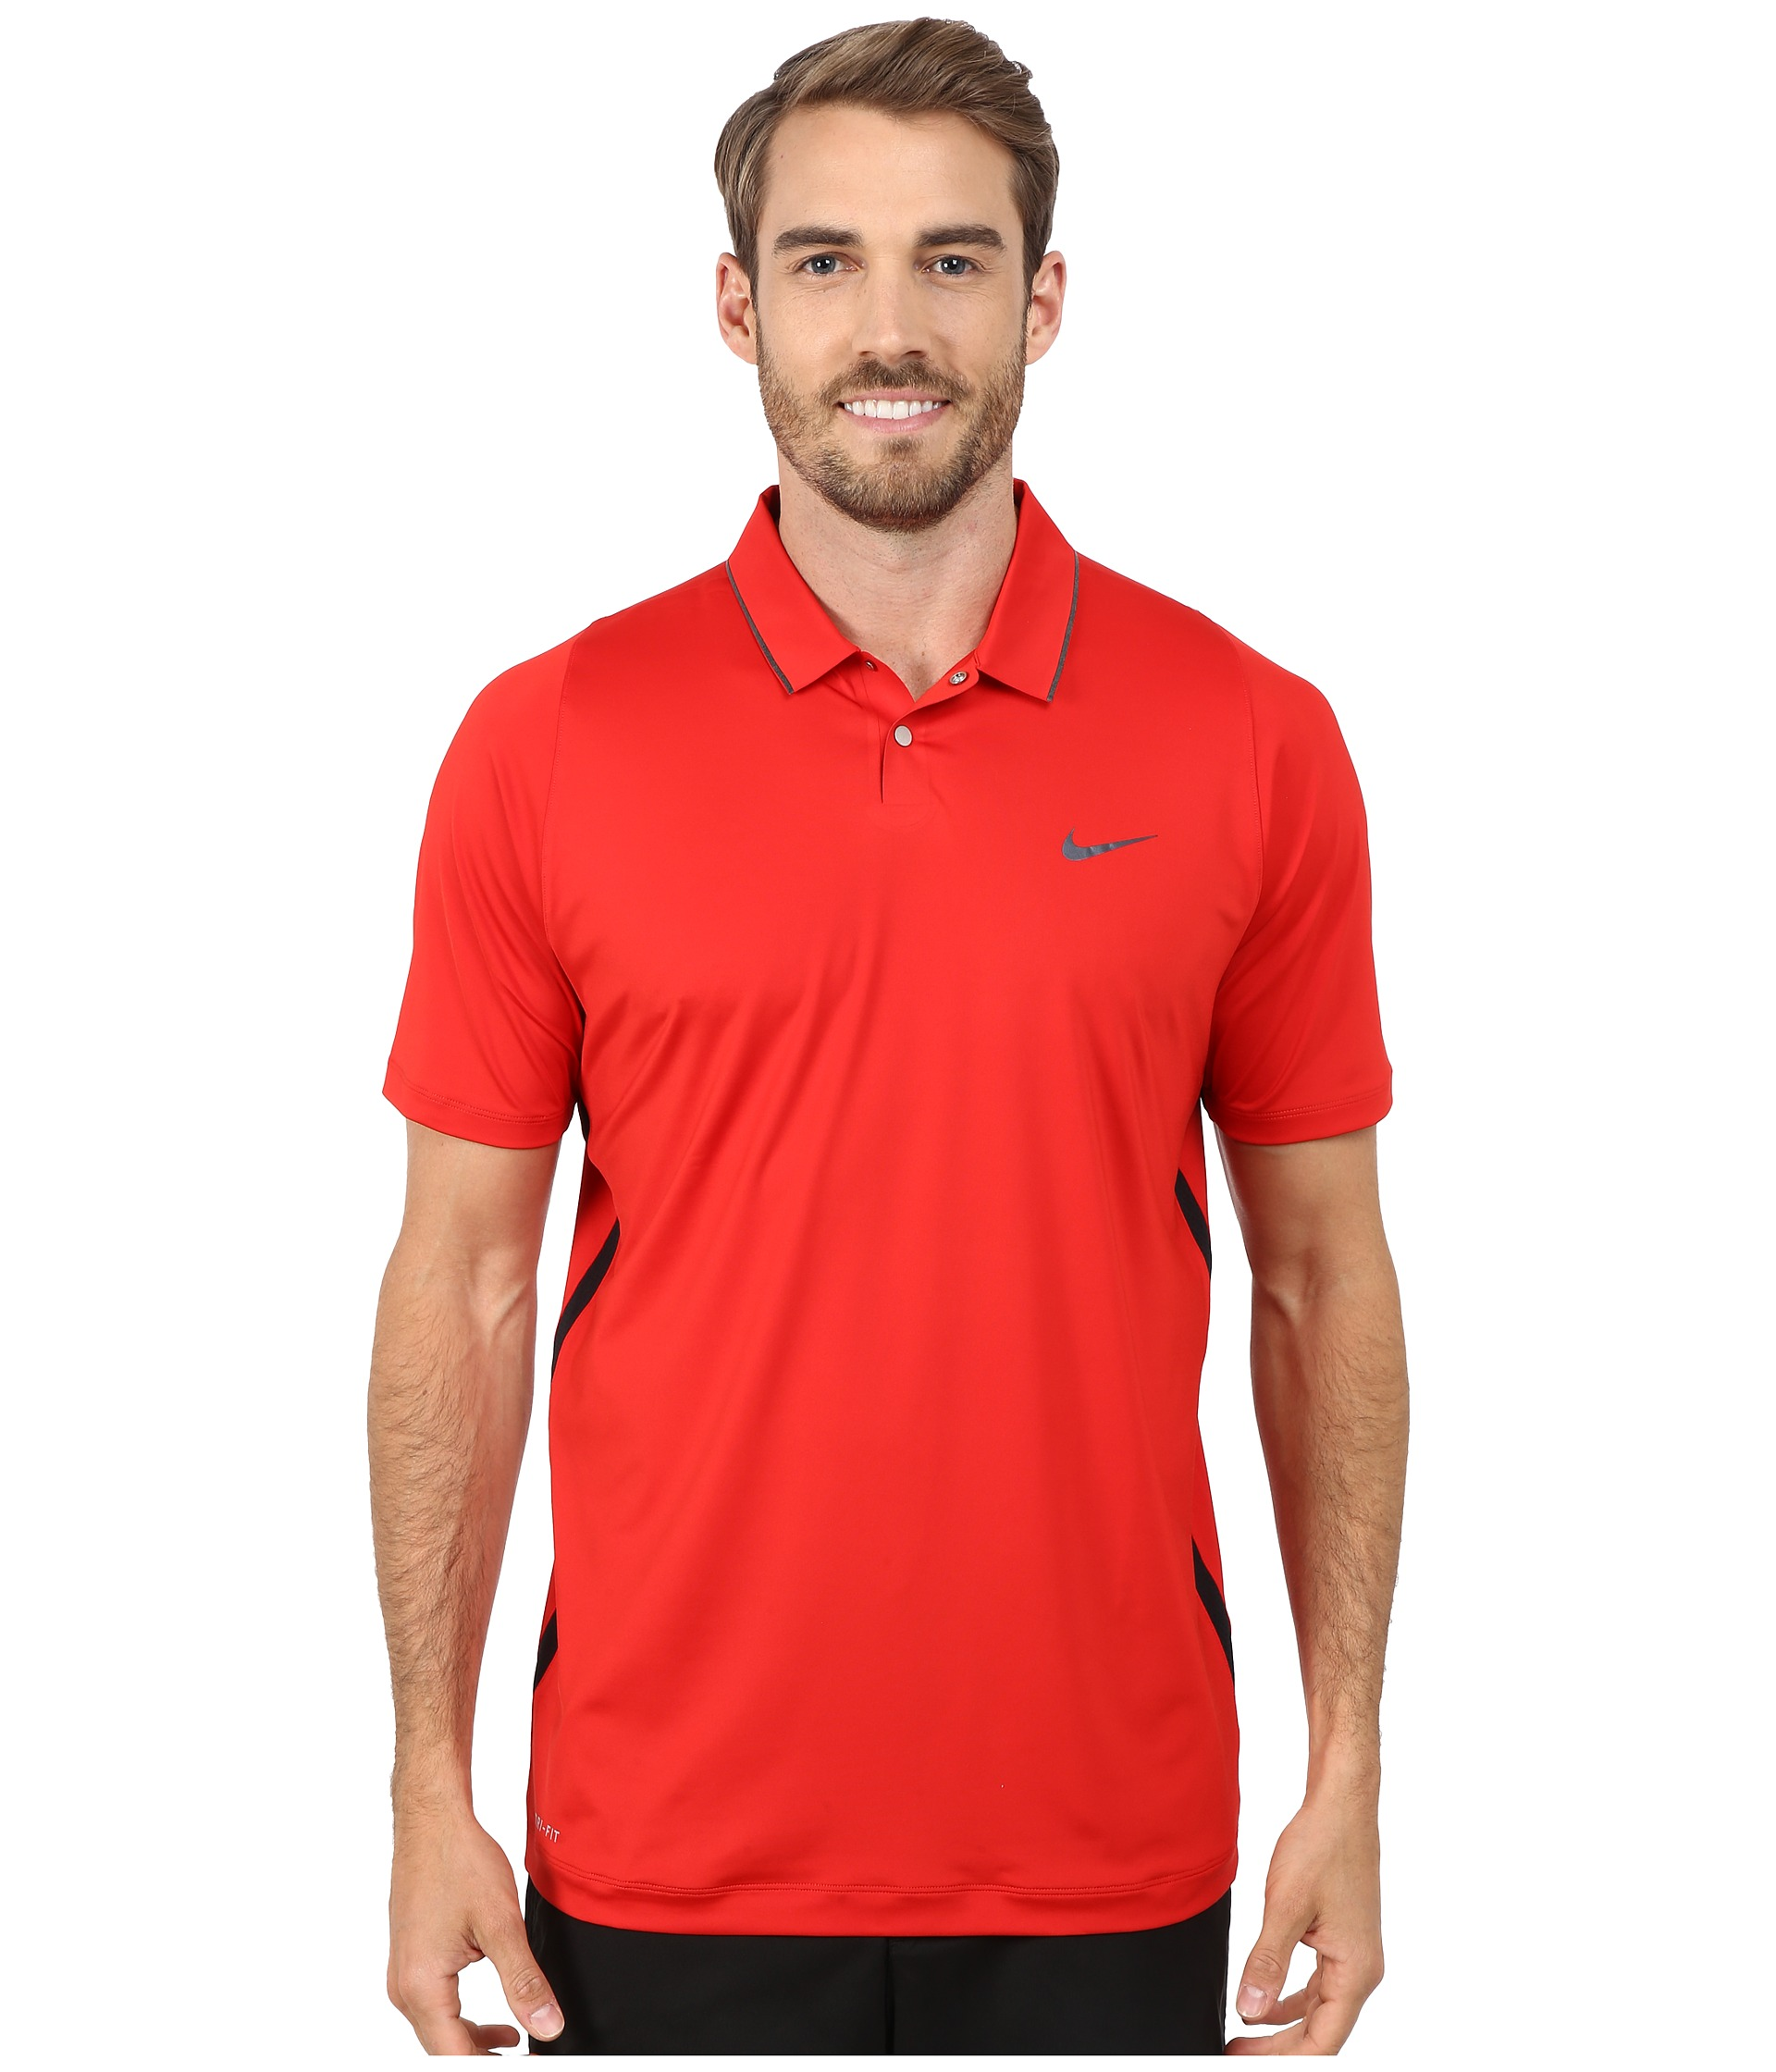 Nike Golf t Shirt Nike Golf Tiger Woods Velocity